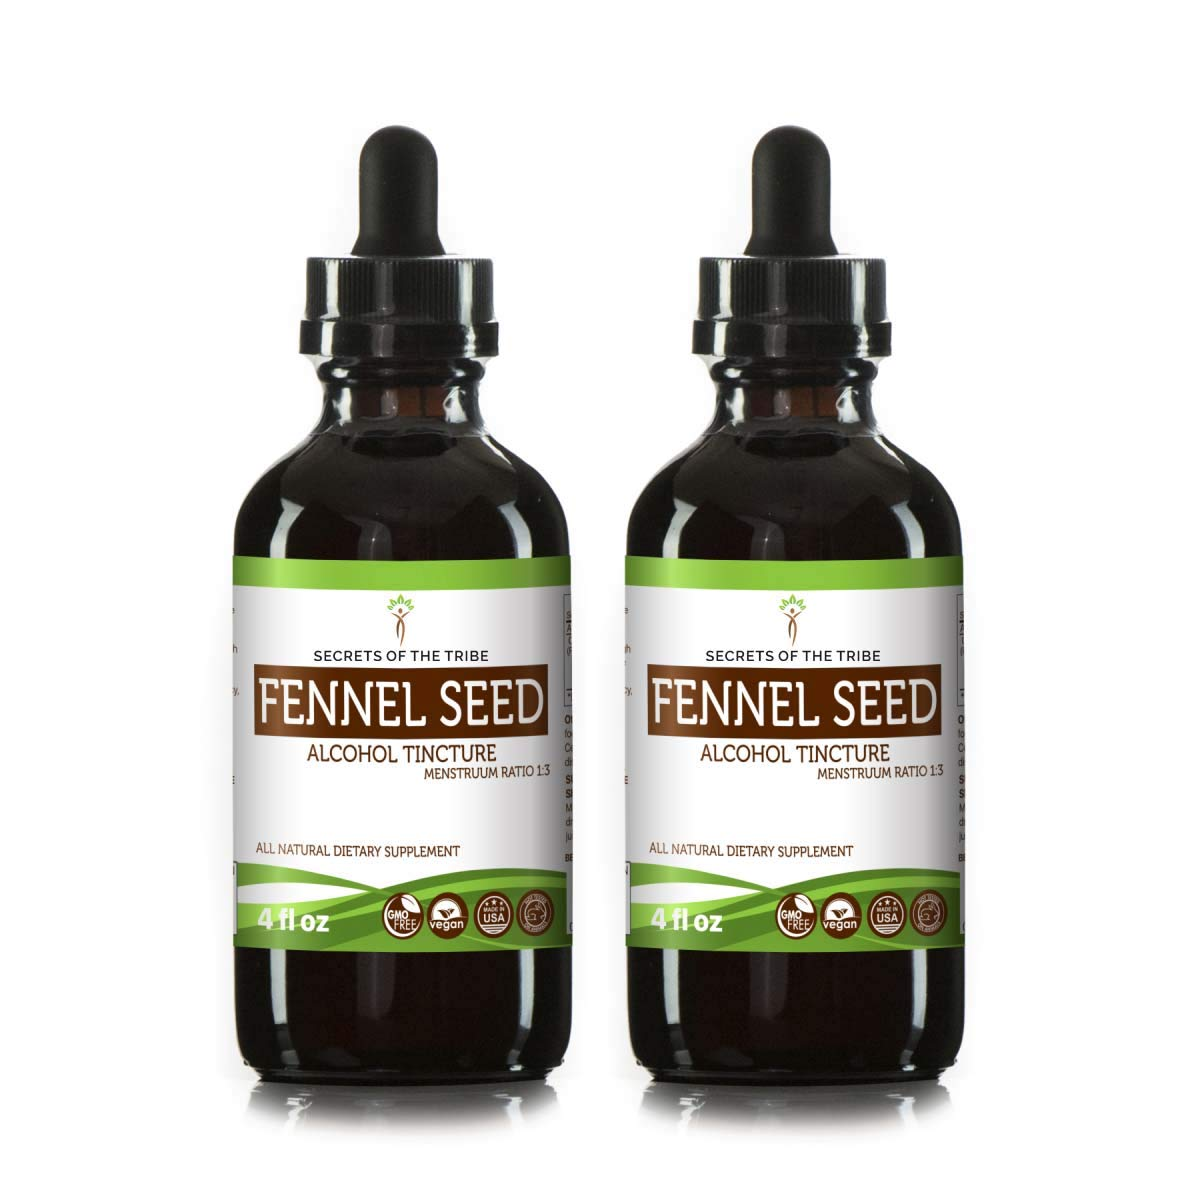 Fennel Seed Tincture Alcohol Extract, Organic Fennel (Foeniculum vulgare) Dried Seed Tincture Supplement (2x4 FL OZ)